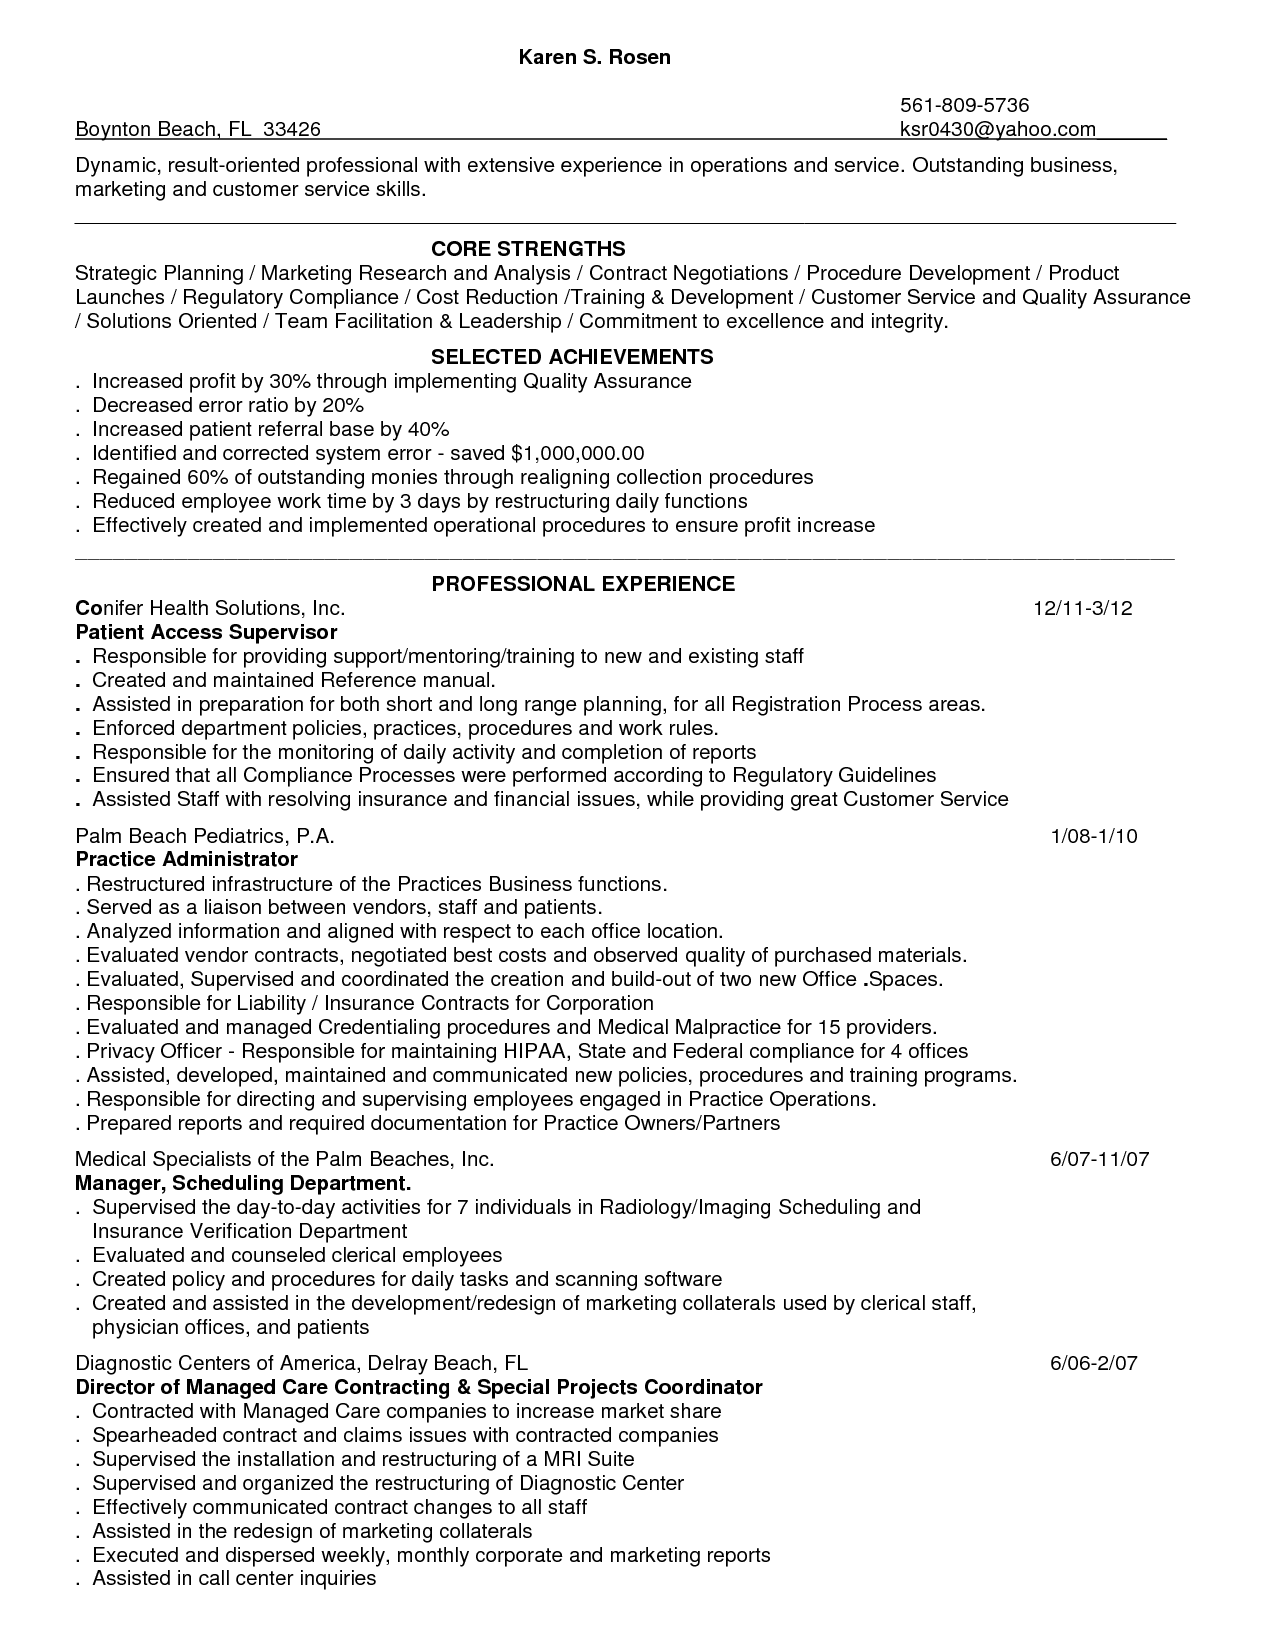 fresher software testing resume samples mechanical engineering resume template word pdf software testing help mechanical engineering resume template word pdf software testing help